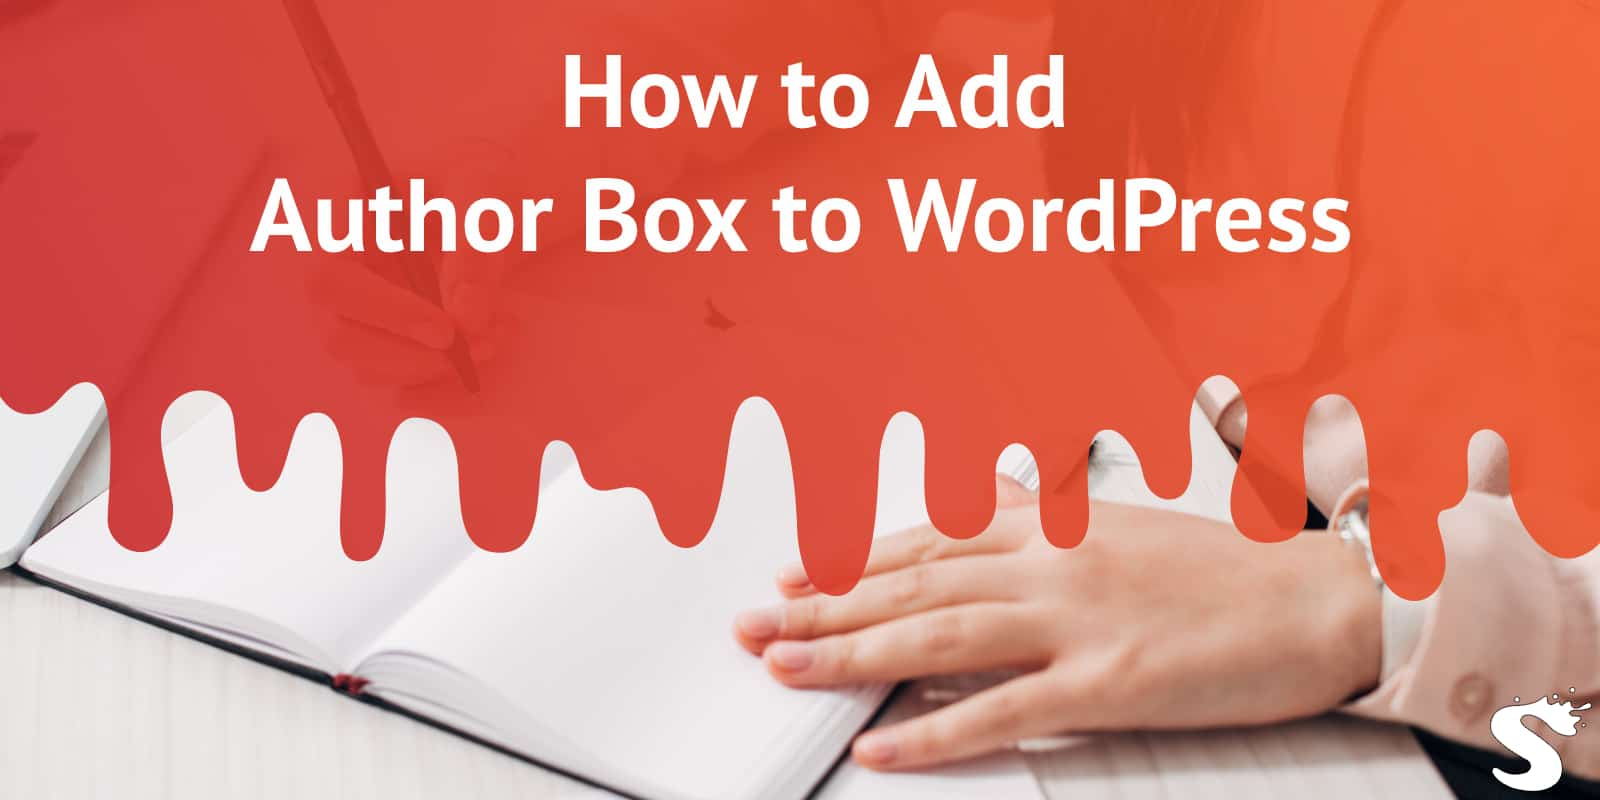 Add Author Box to WordPress